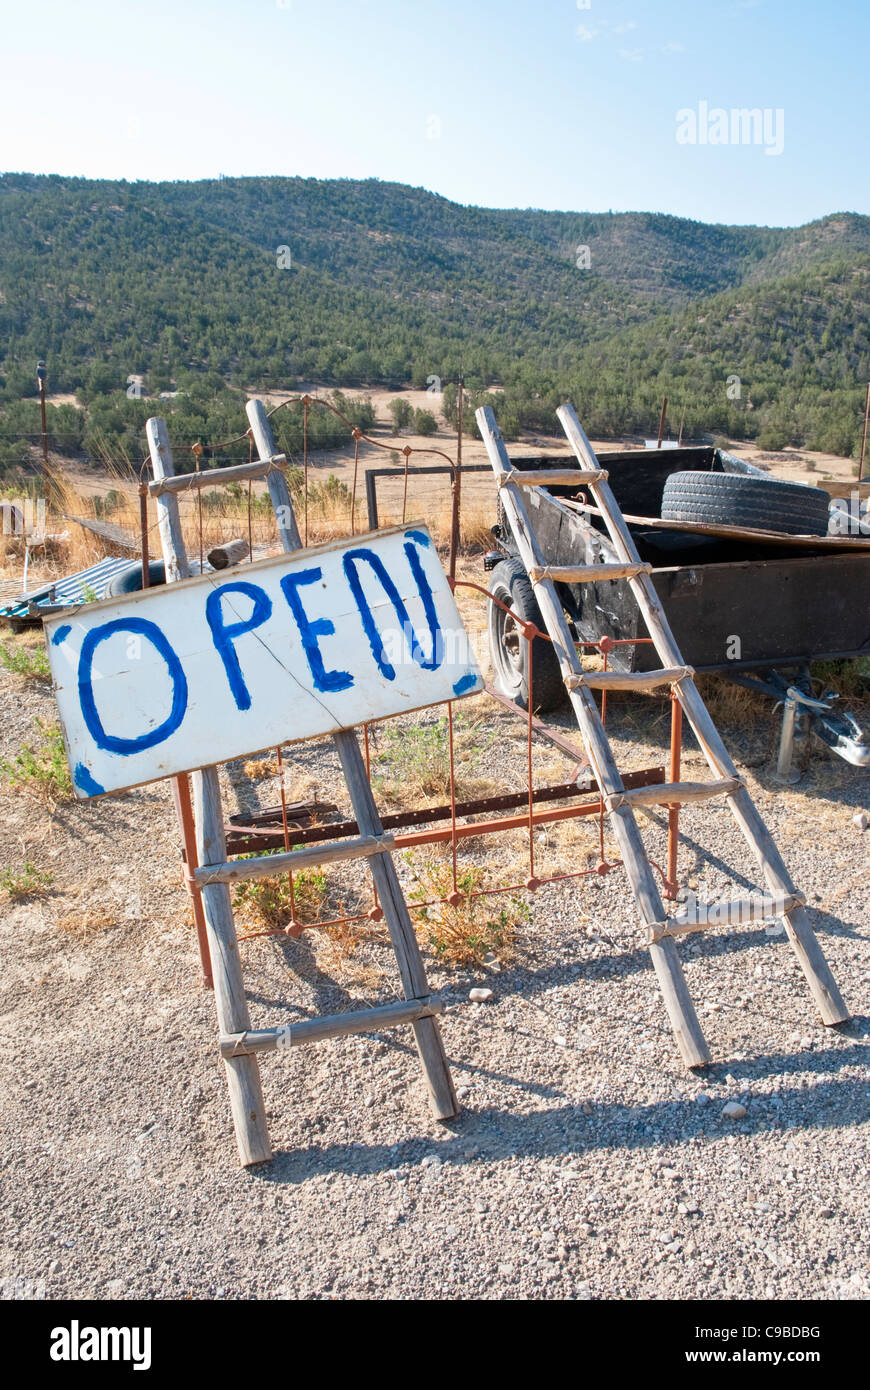 'OPEN' says the sign at a roadside junk shop along route 70 in southern New Mexico. - Stock Image